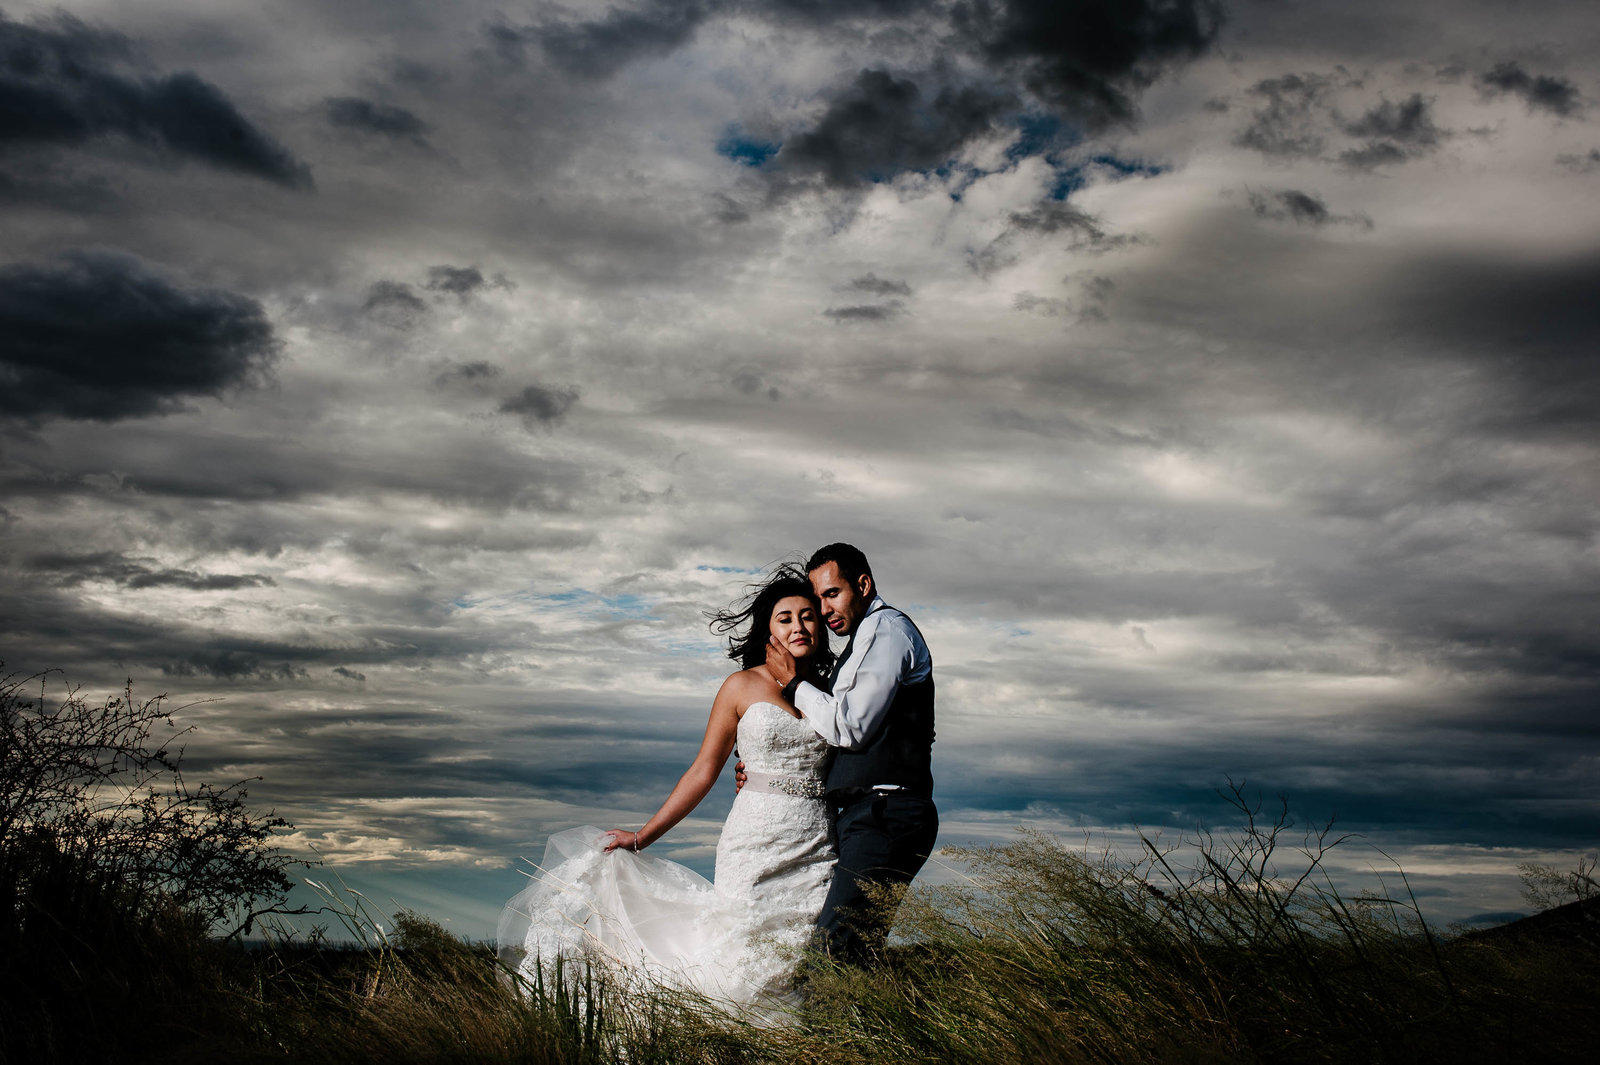 298-El-paso-wedding-photographer-El Paso Wedding Photographer_P30